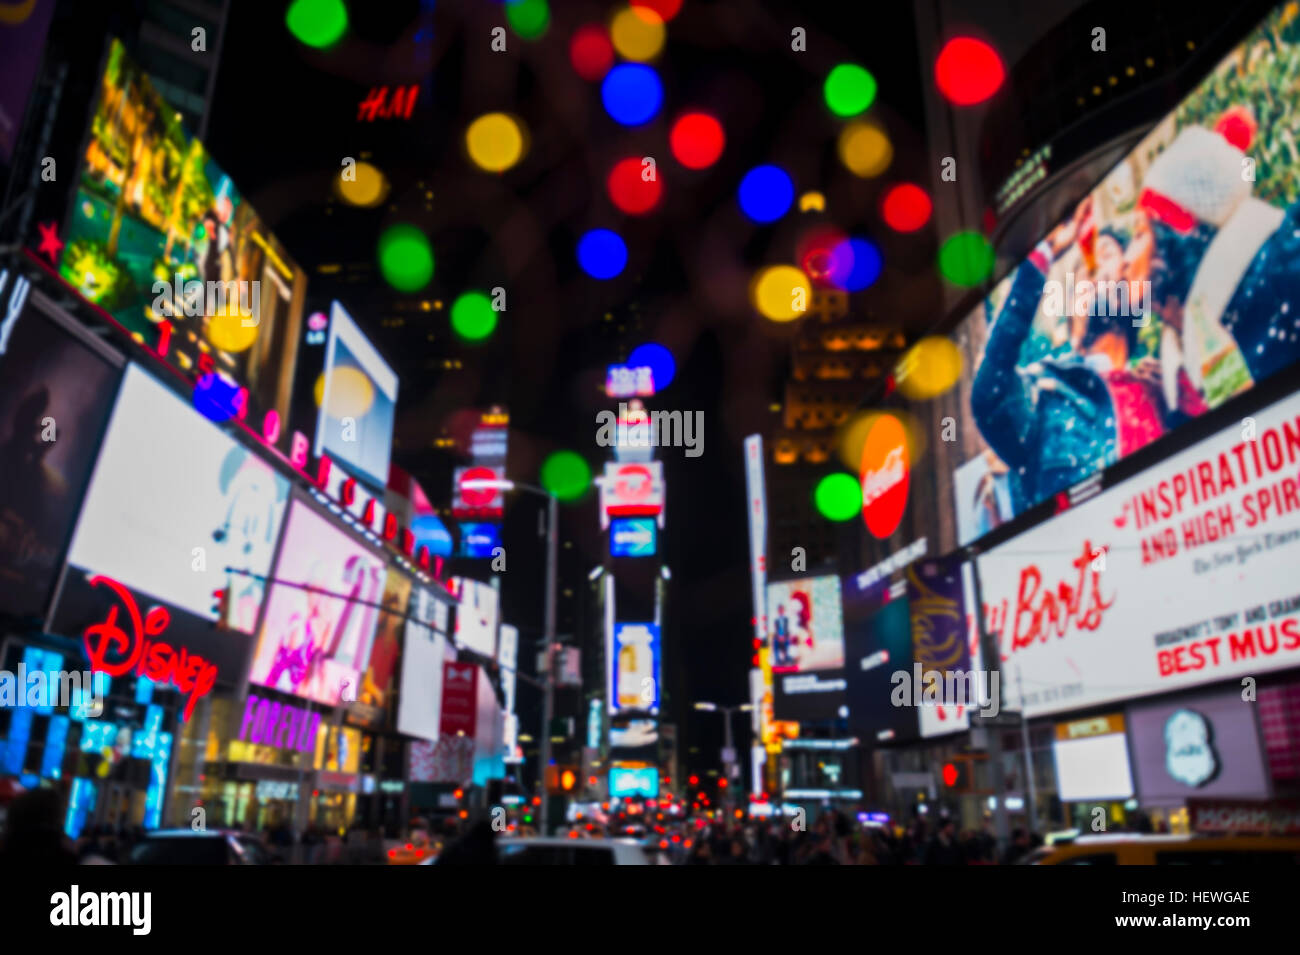 NEW YORK CITY - DECEMBER 23 2016 Colorful lights decorate Times Square as the city prepares for New Yearu0027s Eve celebrations. & NEW YORK CITY - DECEMBER 23 2016: Colorful lights decorate Times ...